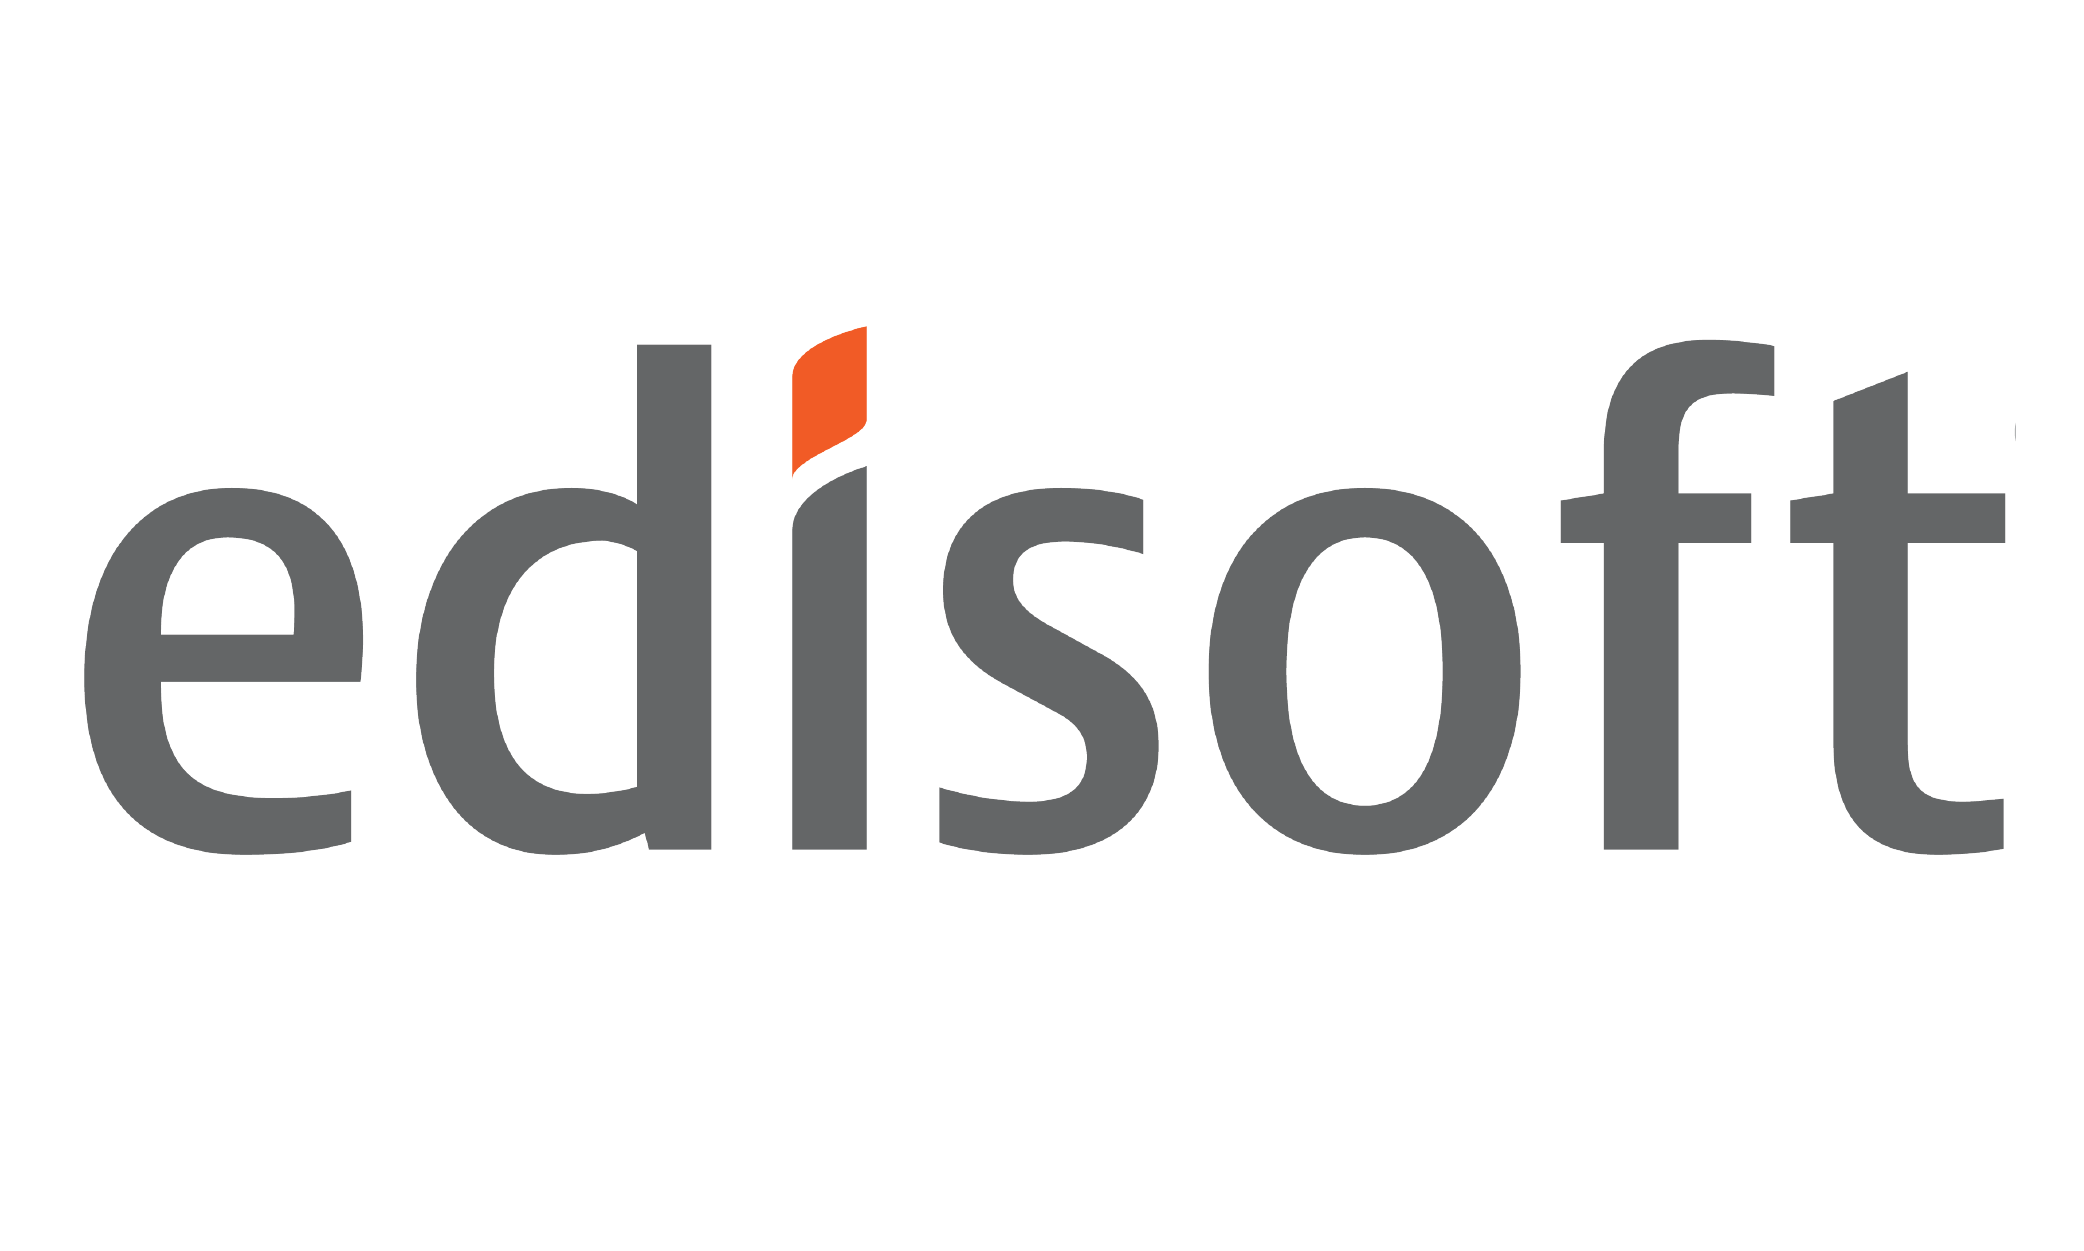 Edisoft Inc. - Smart Process Supply Chain Platform